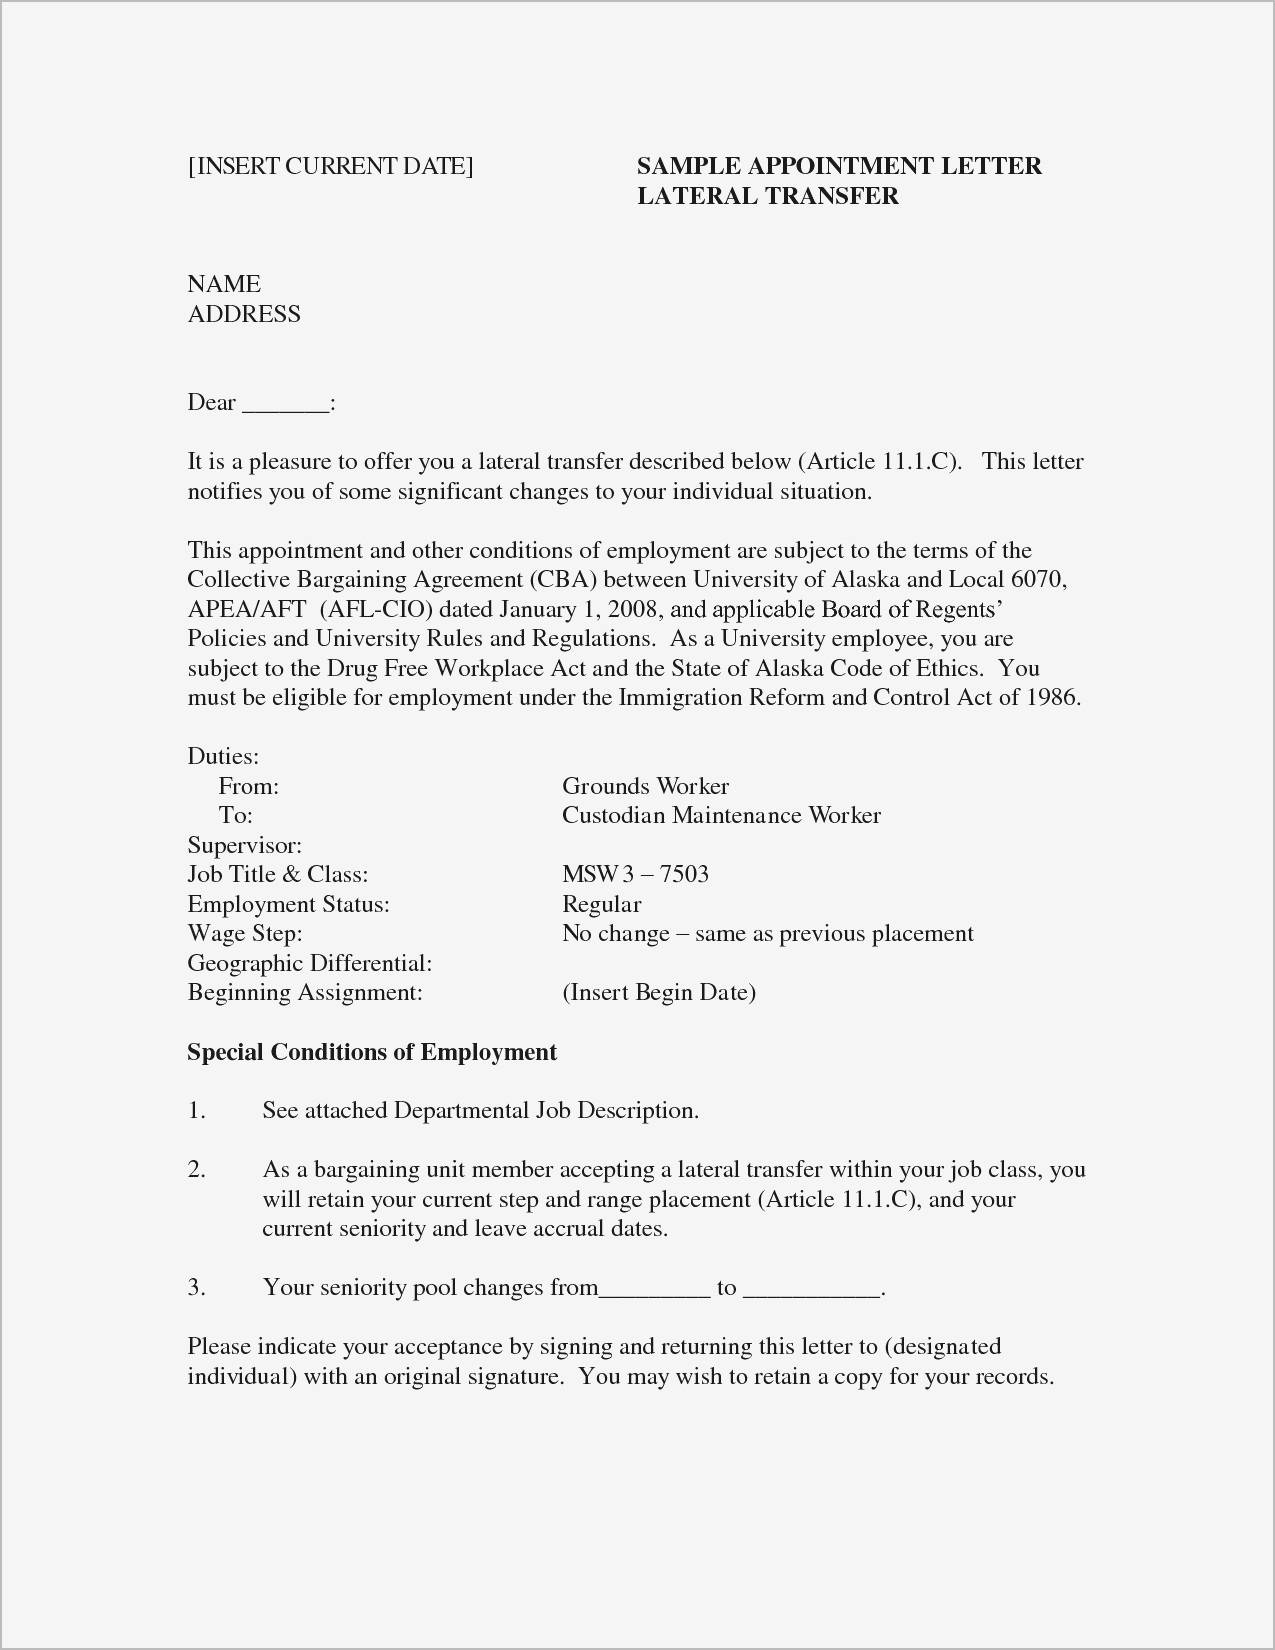 Letter Of Intent Template Word - Business Letter Word Template New Letter Intent Template Word